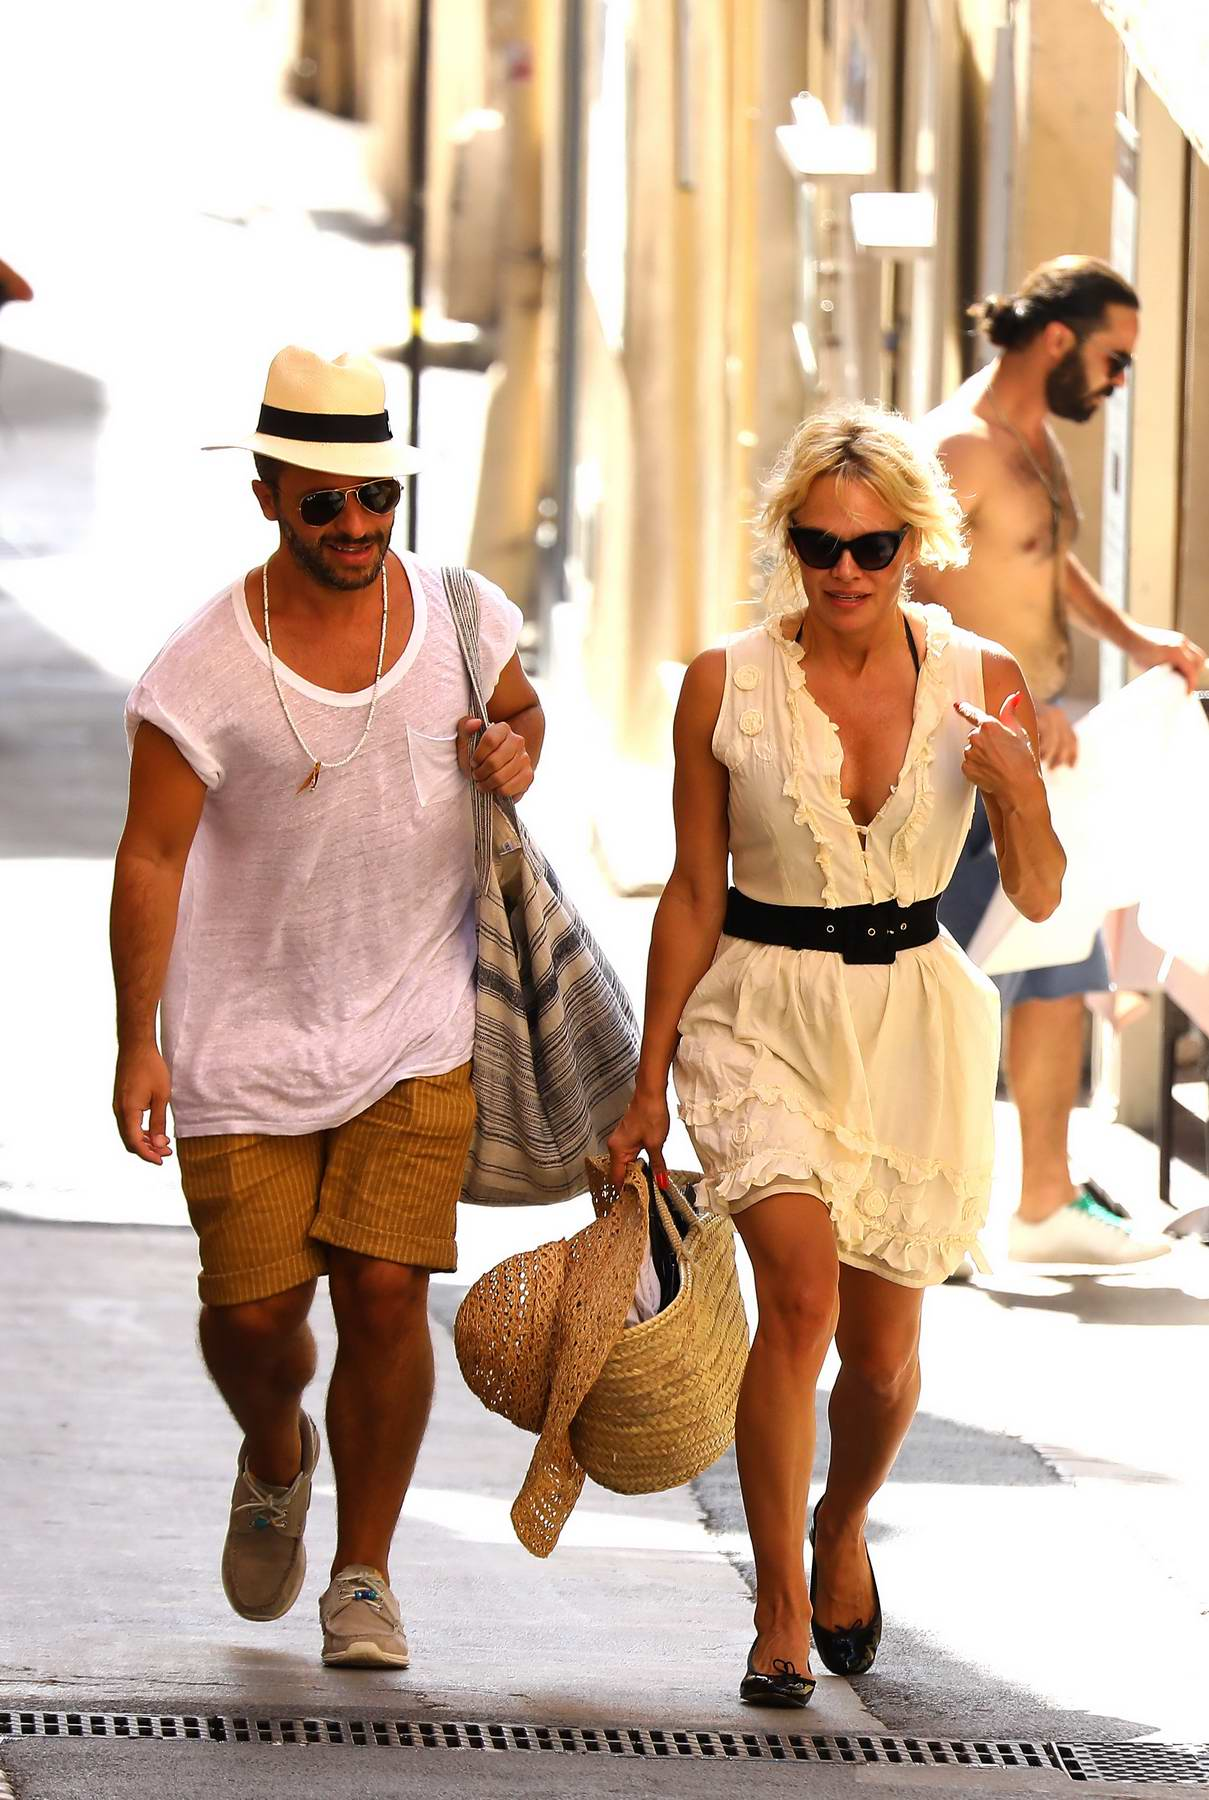 Pamela Anderson spotted with a Male companion strolling through the Old city streets in Saint Tropez, France